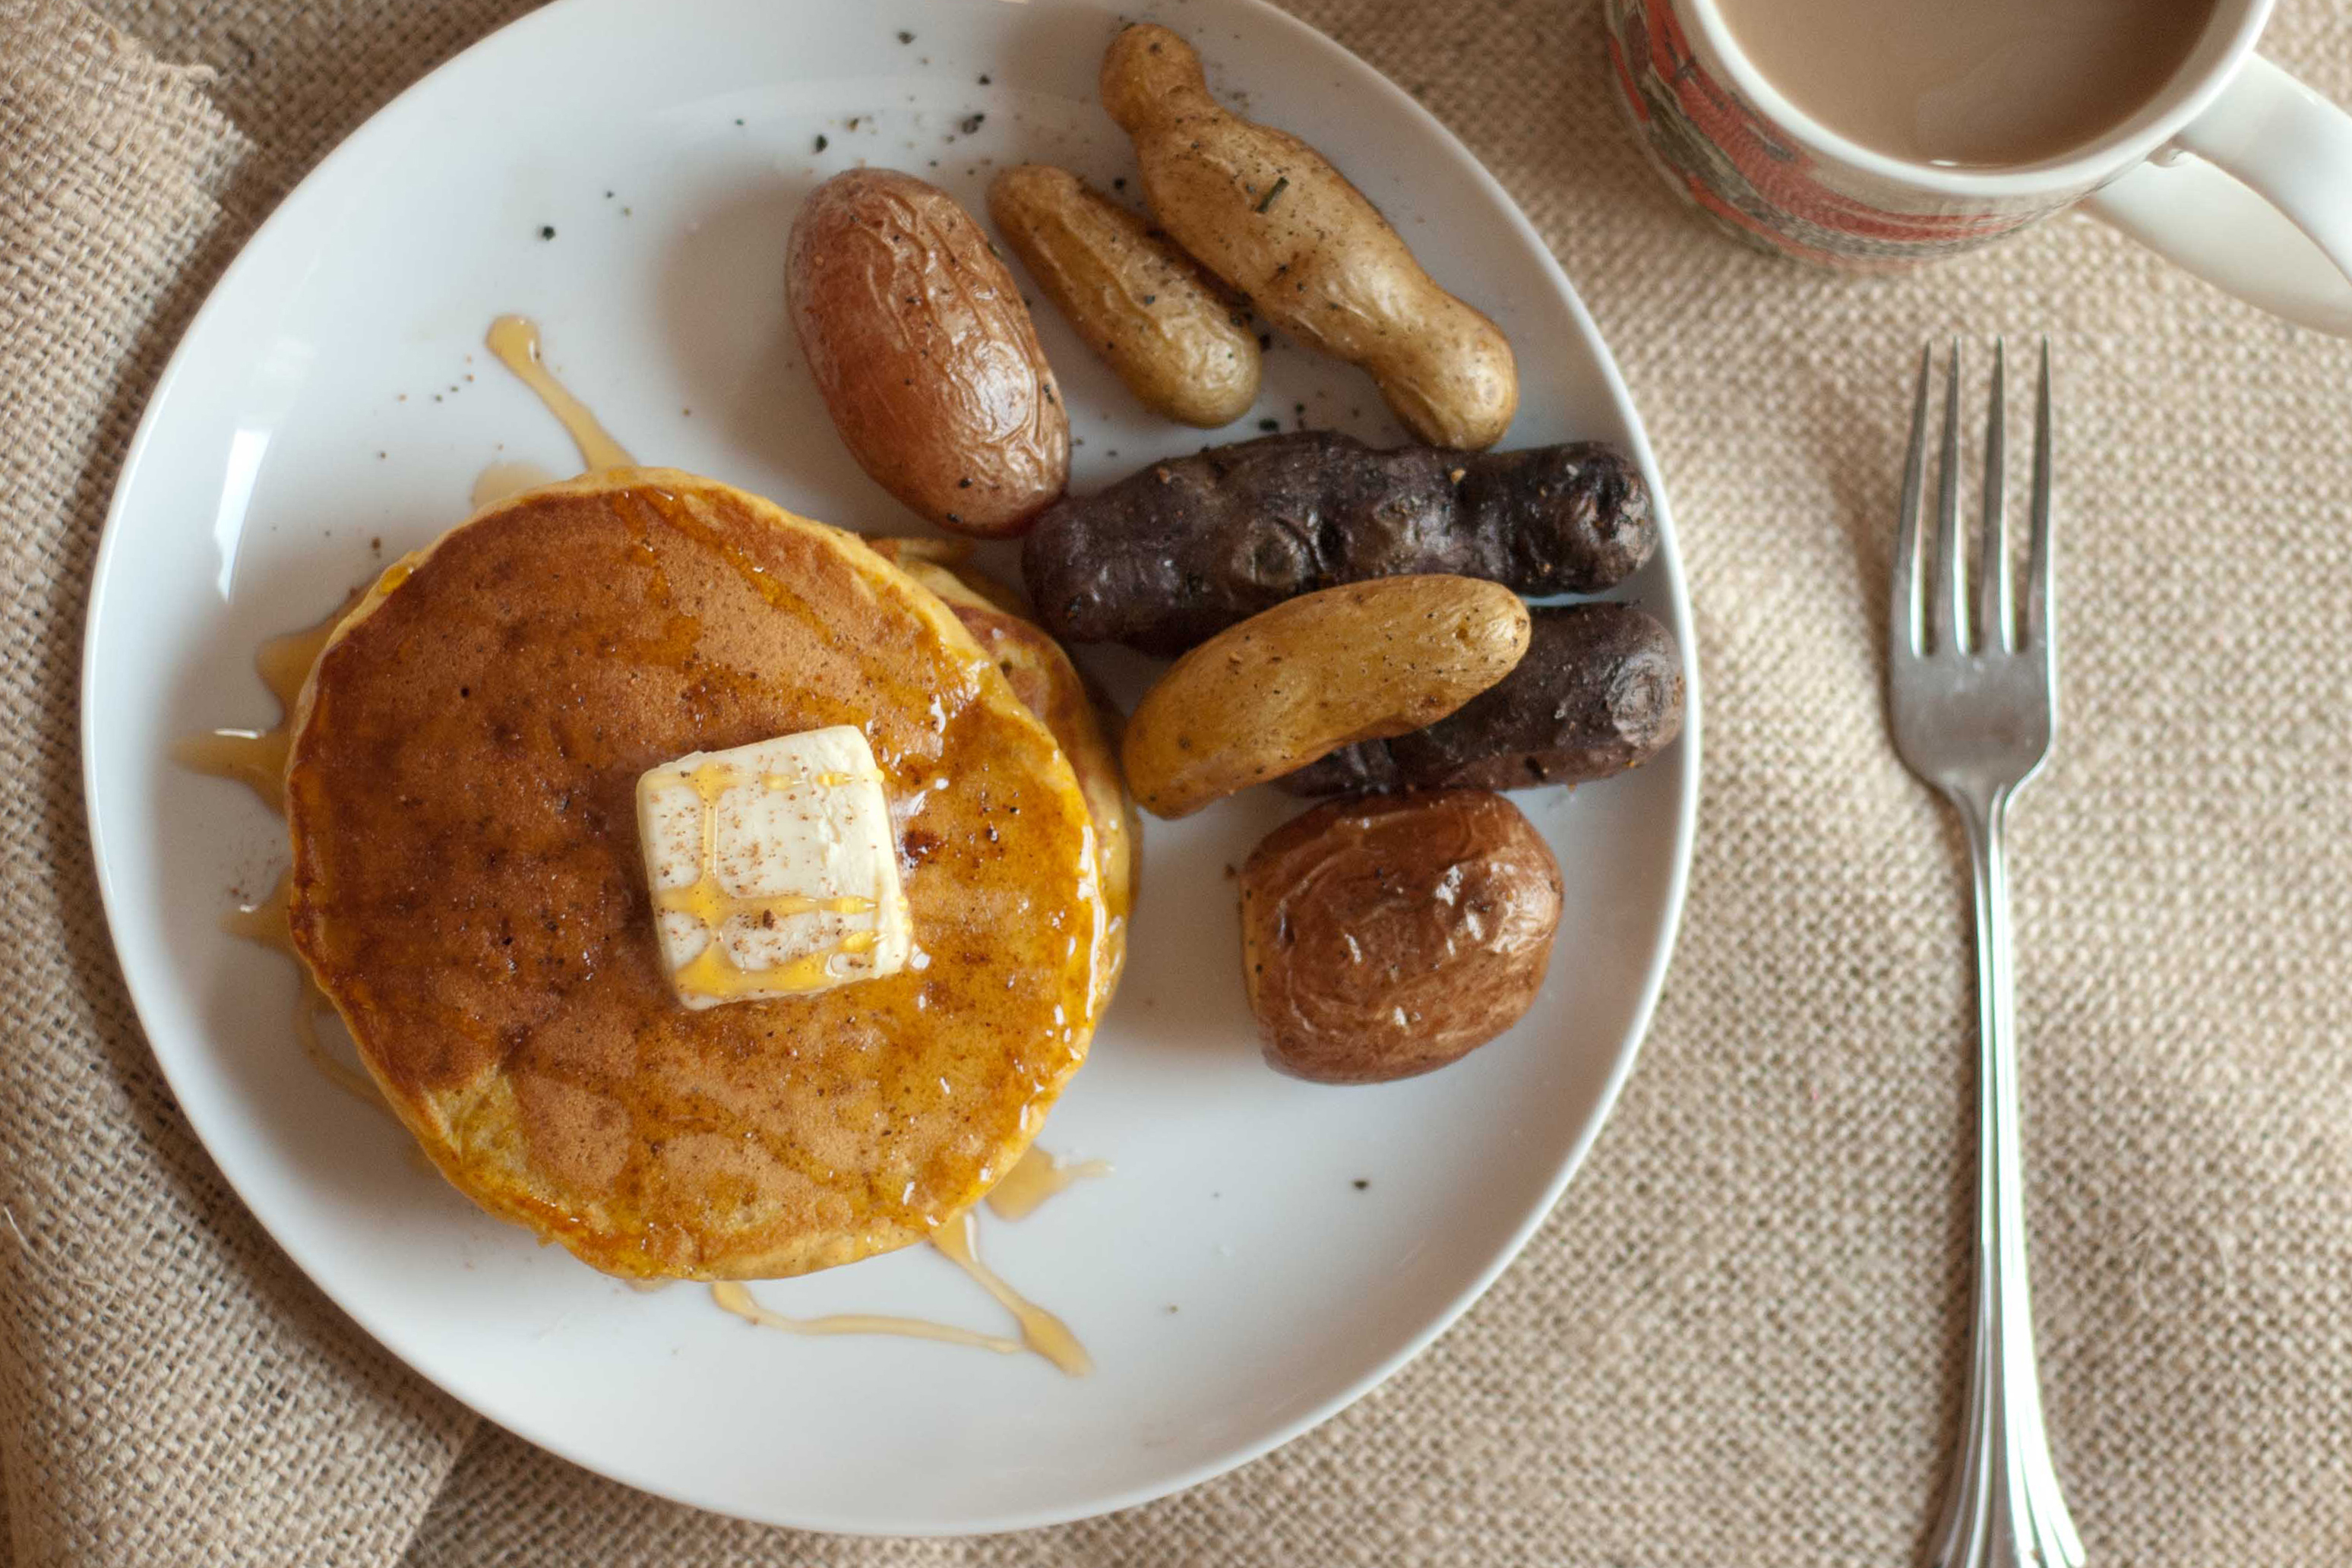 ... with a twist on a breakfast classic: pancakes! Yes, pumpkin pancakes